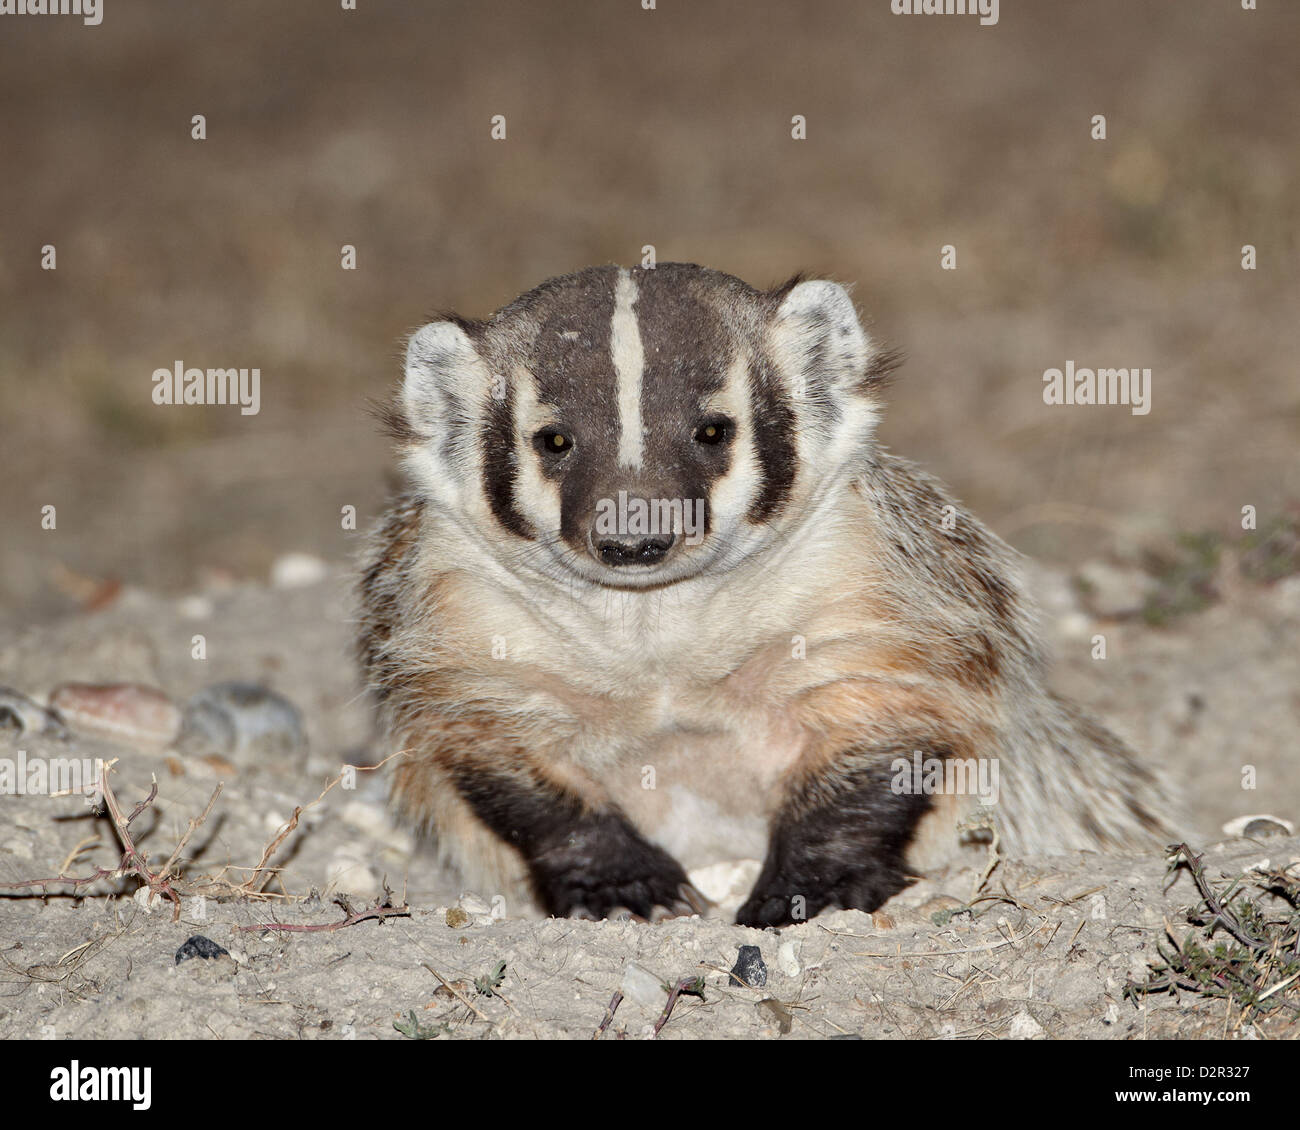 Badger (Taxidea taxus), Buffalo Gap National Grassland, Conata Basin, South Dakota, United States of America, North Stock Photo